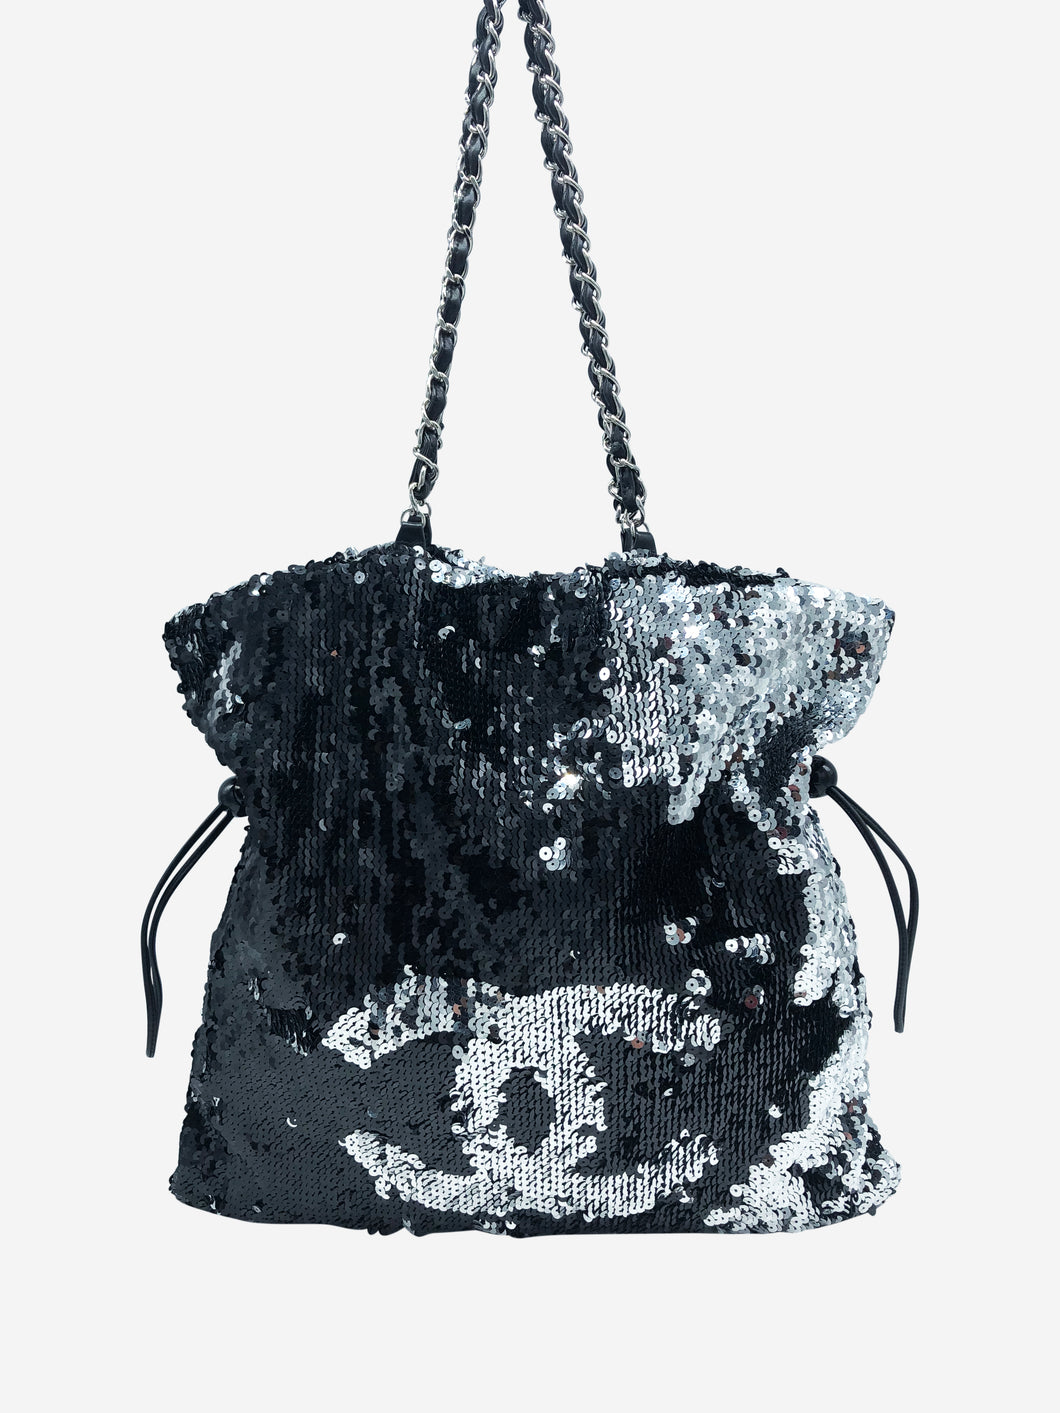 Large reversible sequin tote bag in silver and black